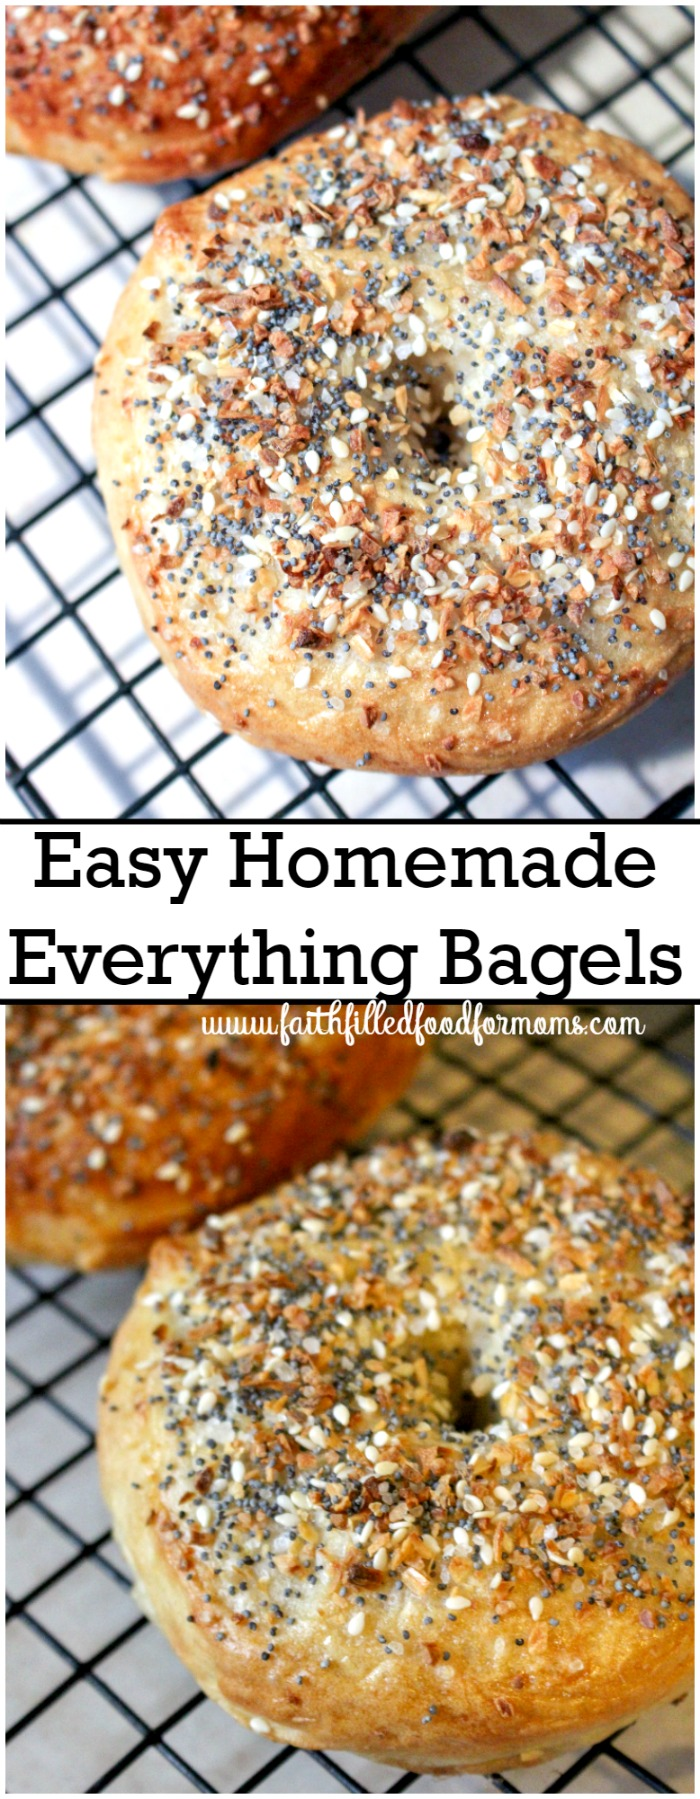 Homemade Bagels with Everything Bagel Seasoning